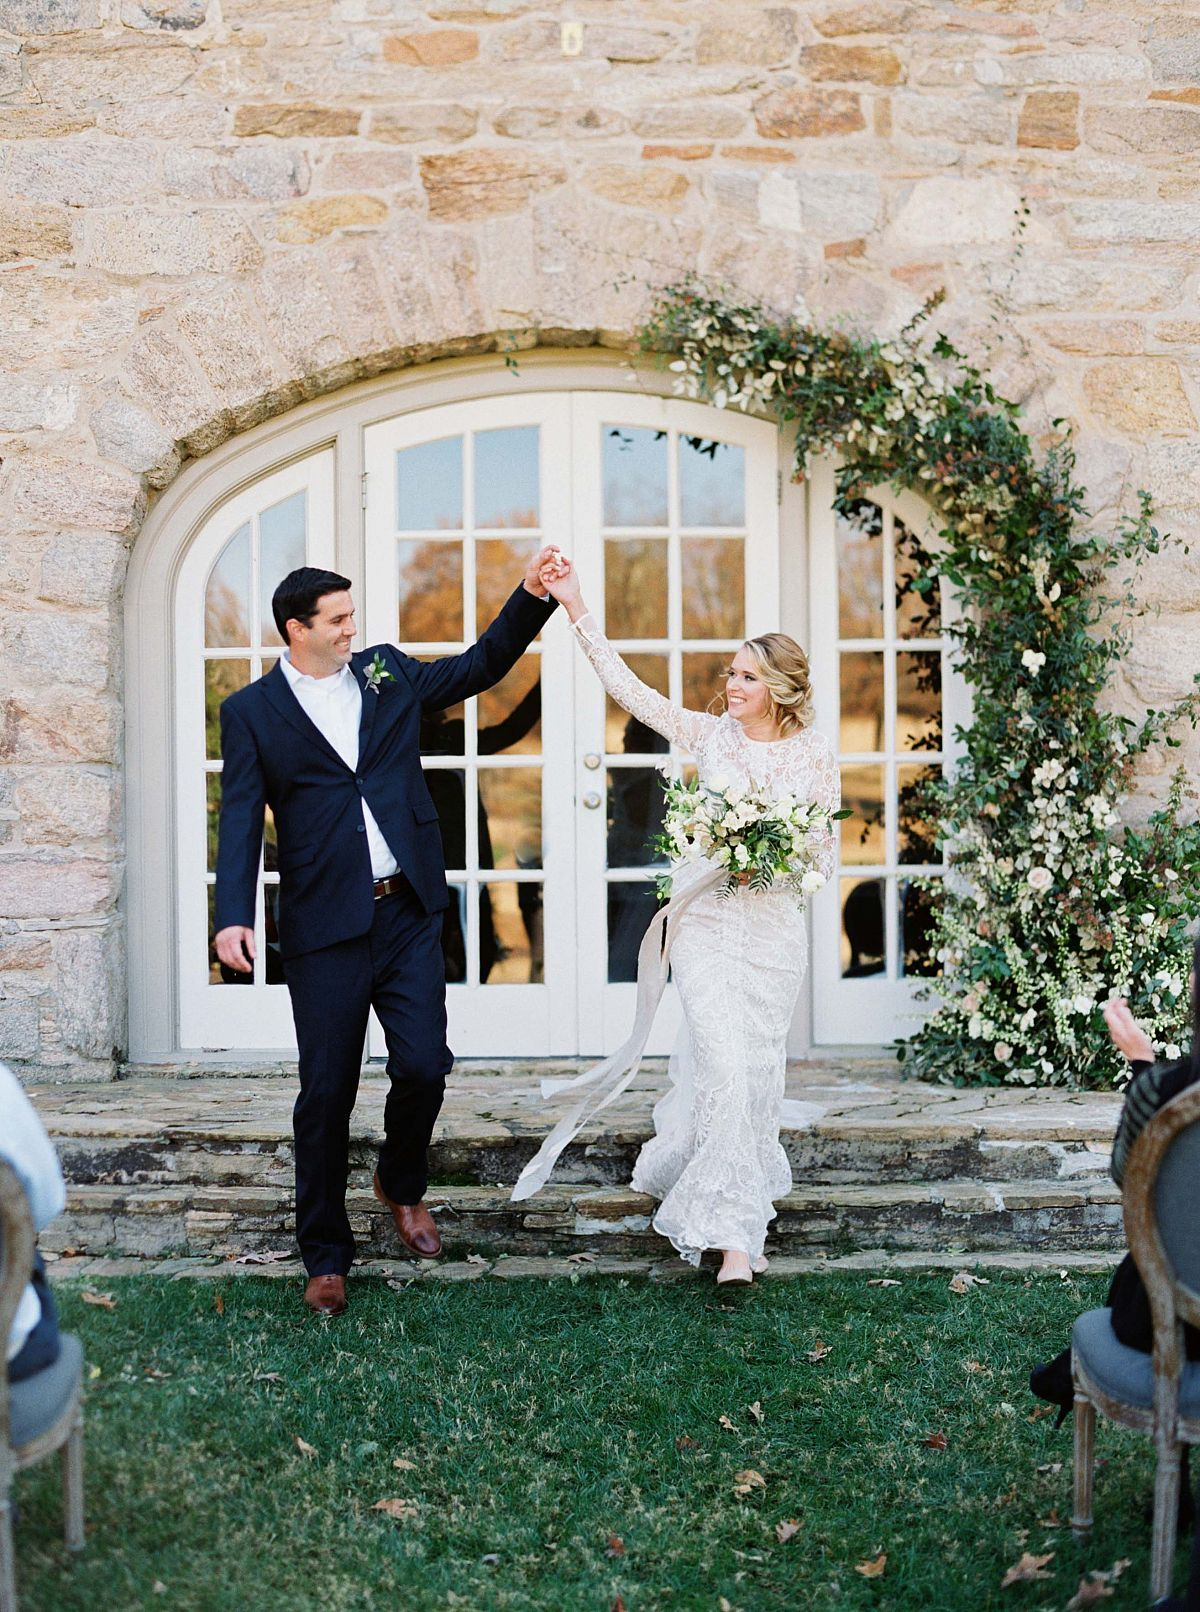 d7dcf8a77 Chic London Wedding with Elegant Rose and Delilah Madeleine Gown | City  Weddings | Pinterest